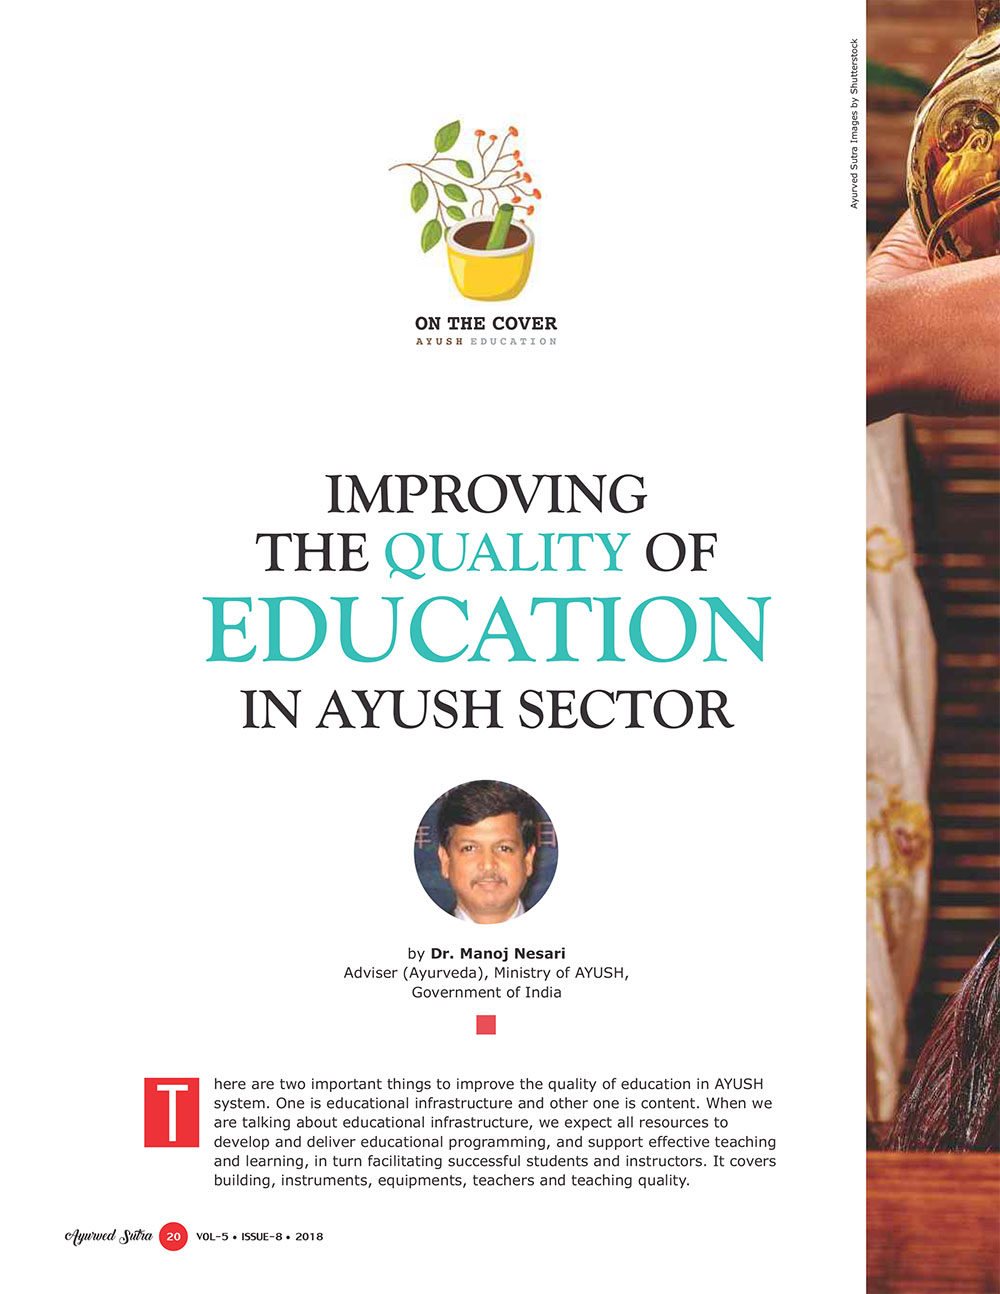 Ayurvedsutra Vol 05 issue 08 22 - Improving the Quality of Education in AYUSH Sector